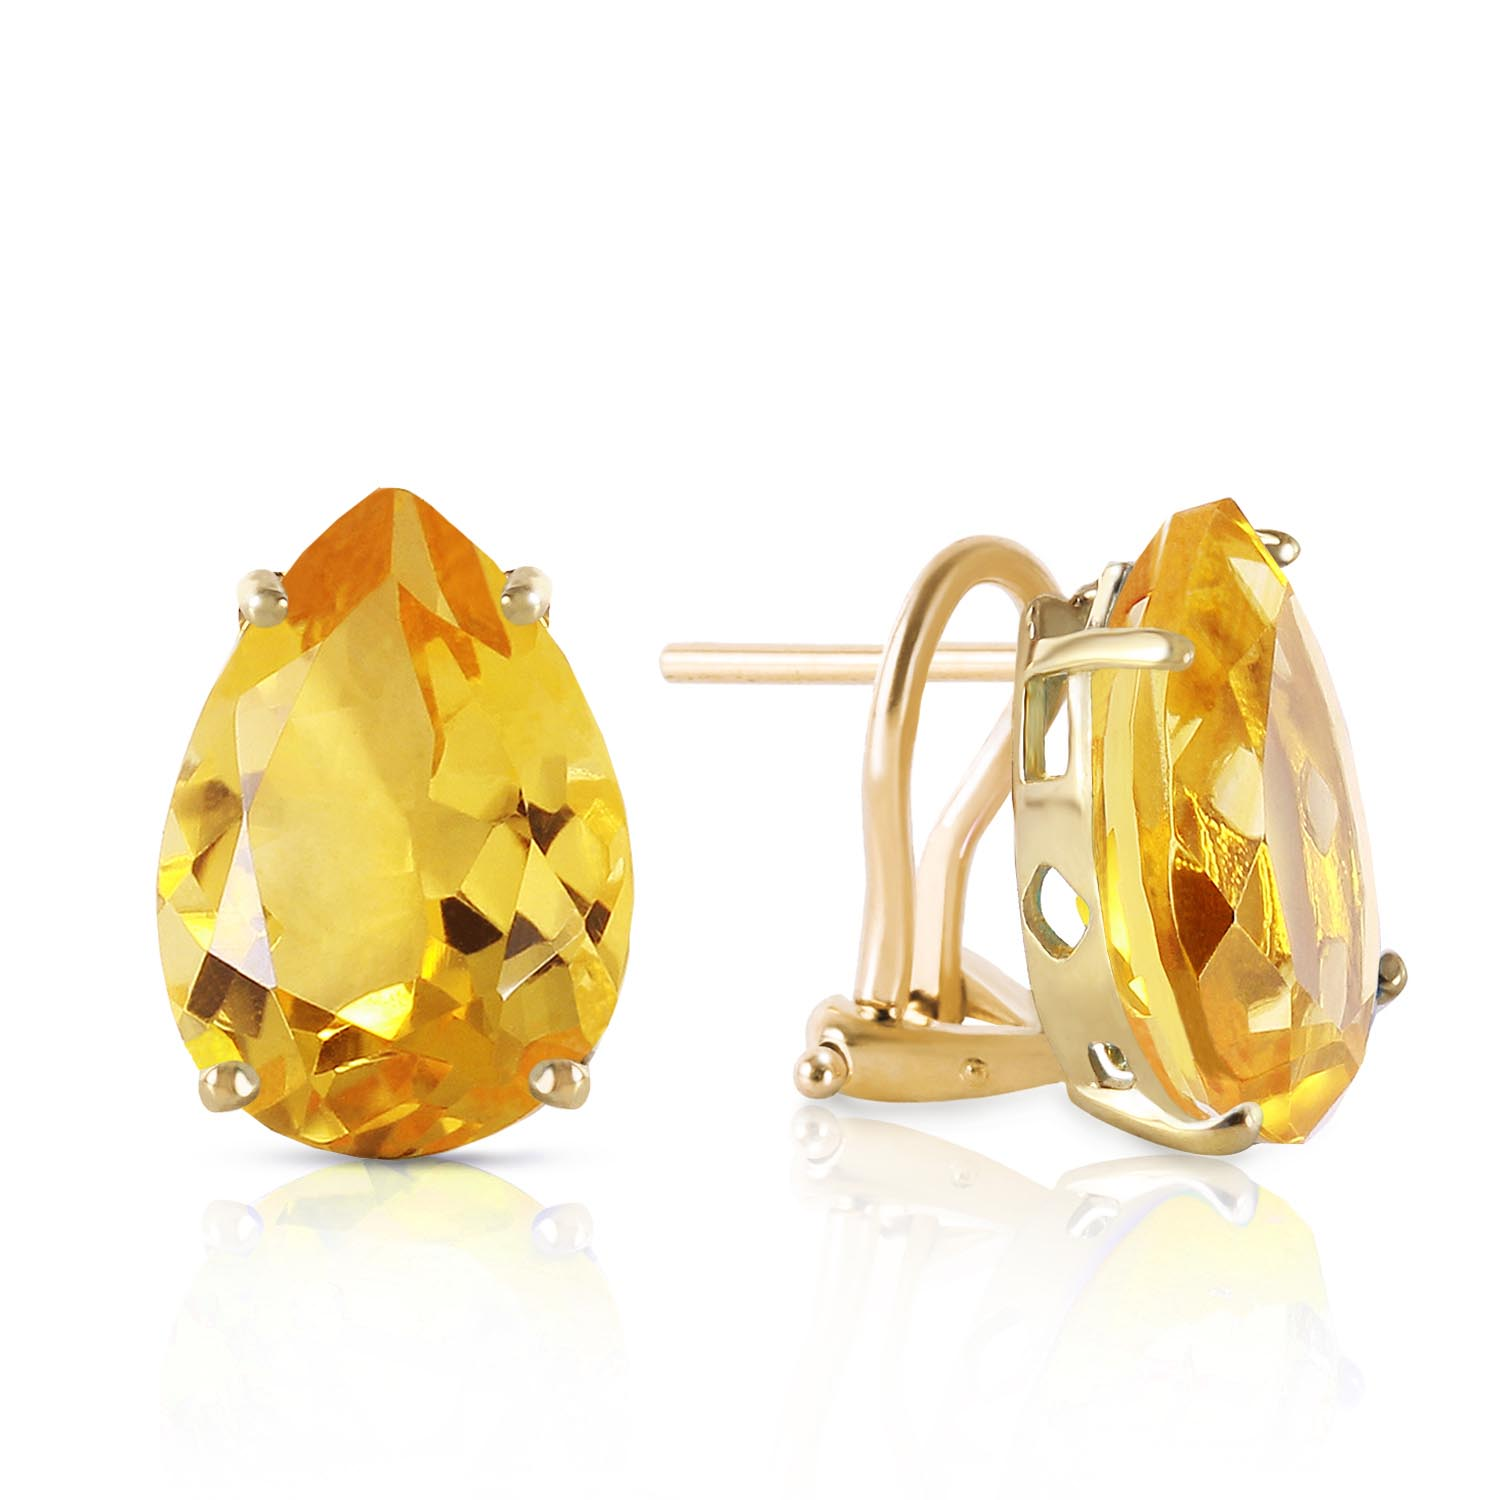 Citrine Droplet Stud Earrings 10 ctw in 9ct Gold